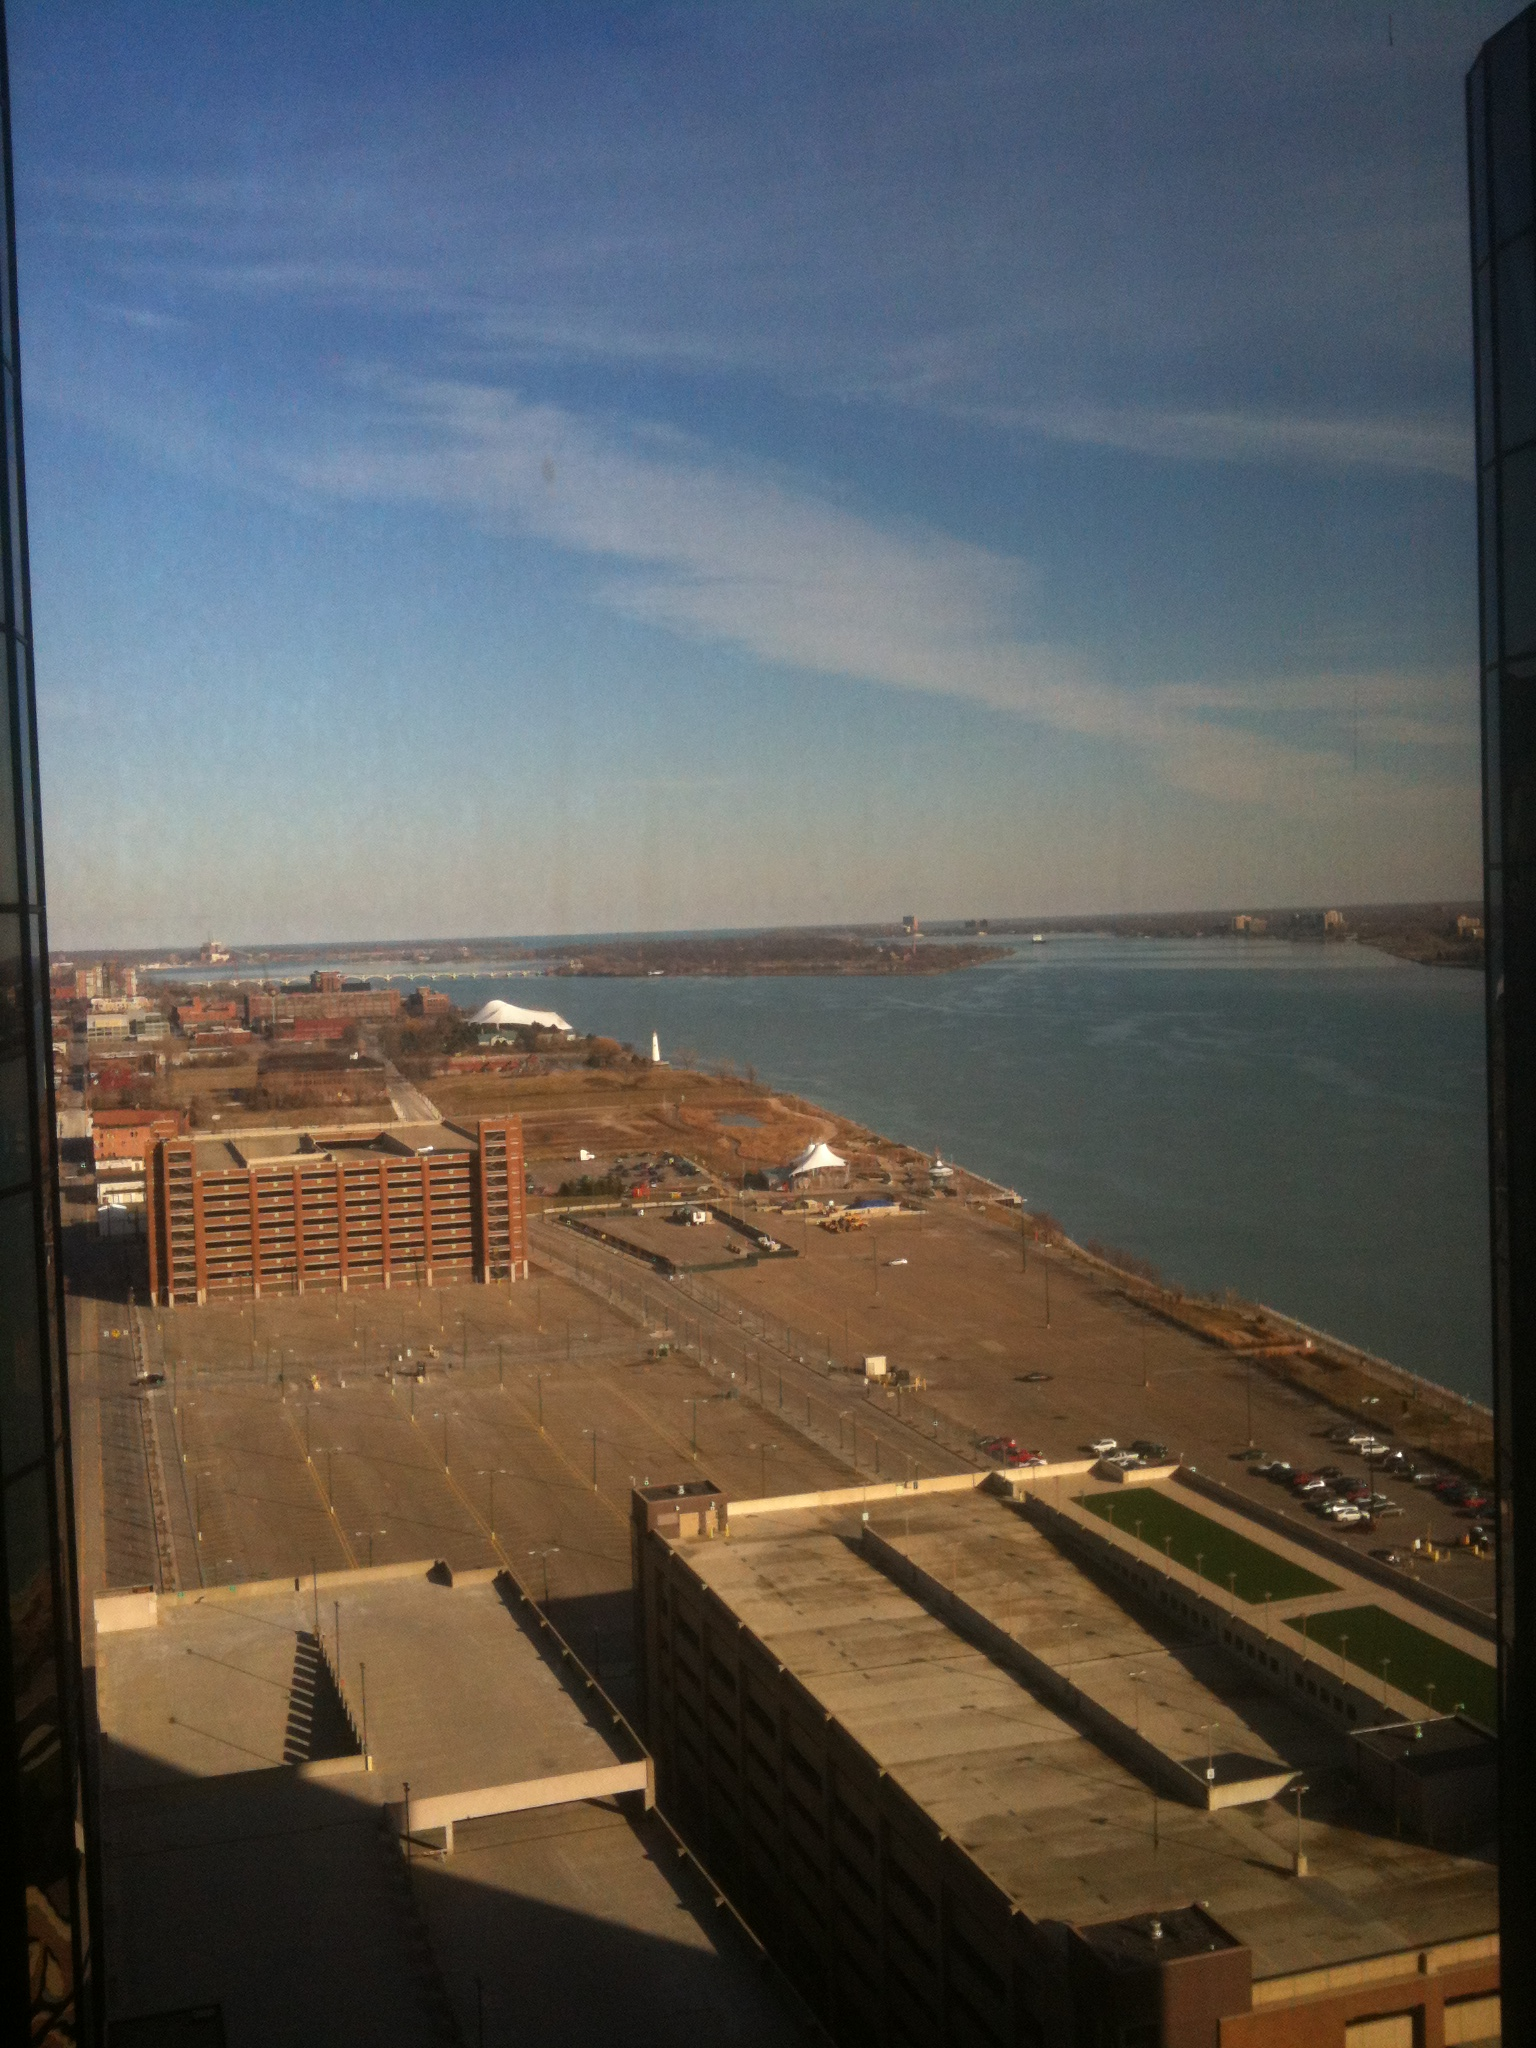 And this way it's the Detroit river with Windsor, Ontario to the far right - in Canada